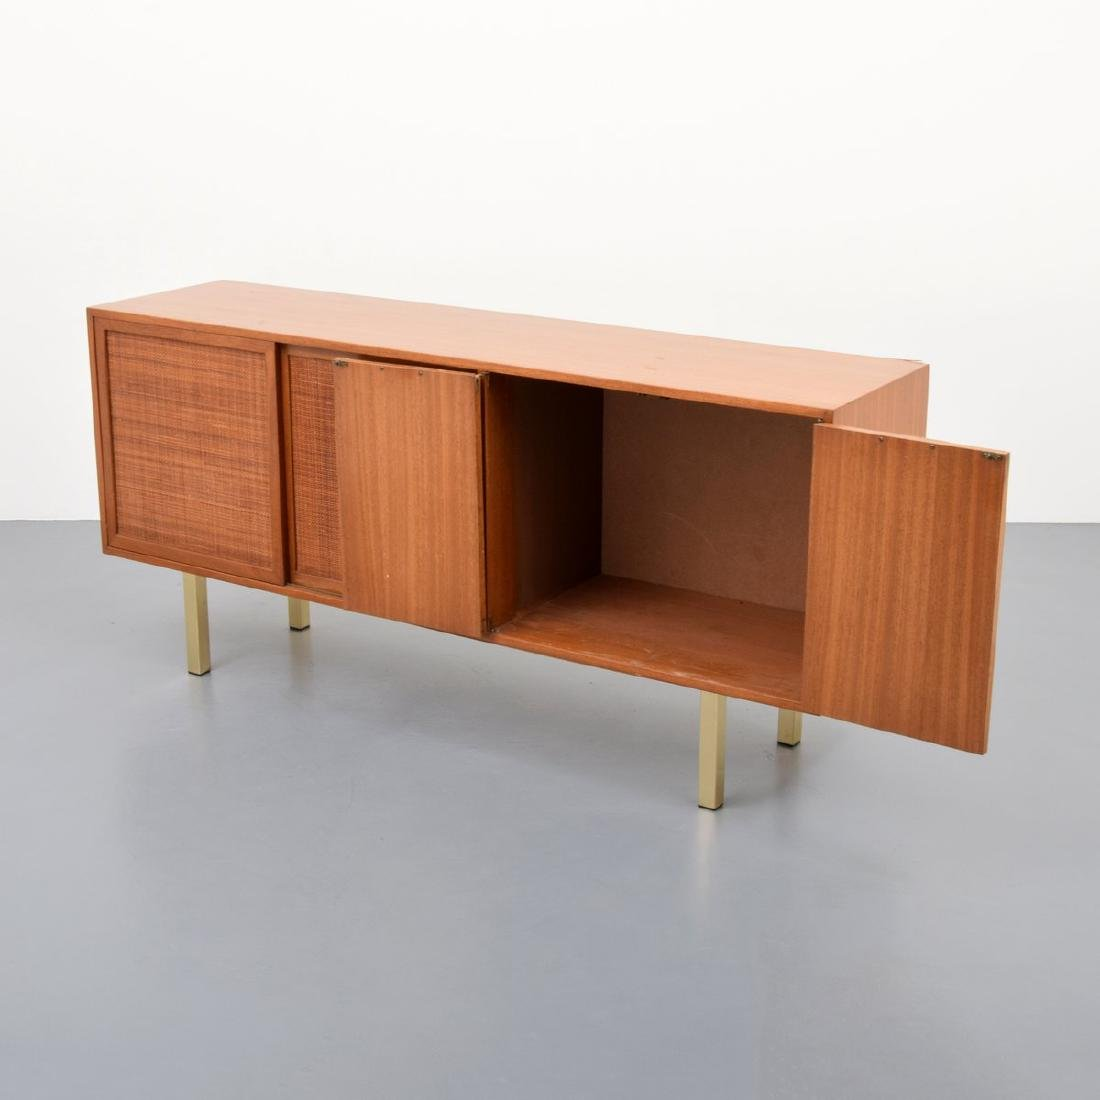 Harvey Probber Cabinet - 7